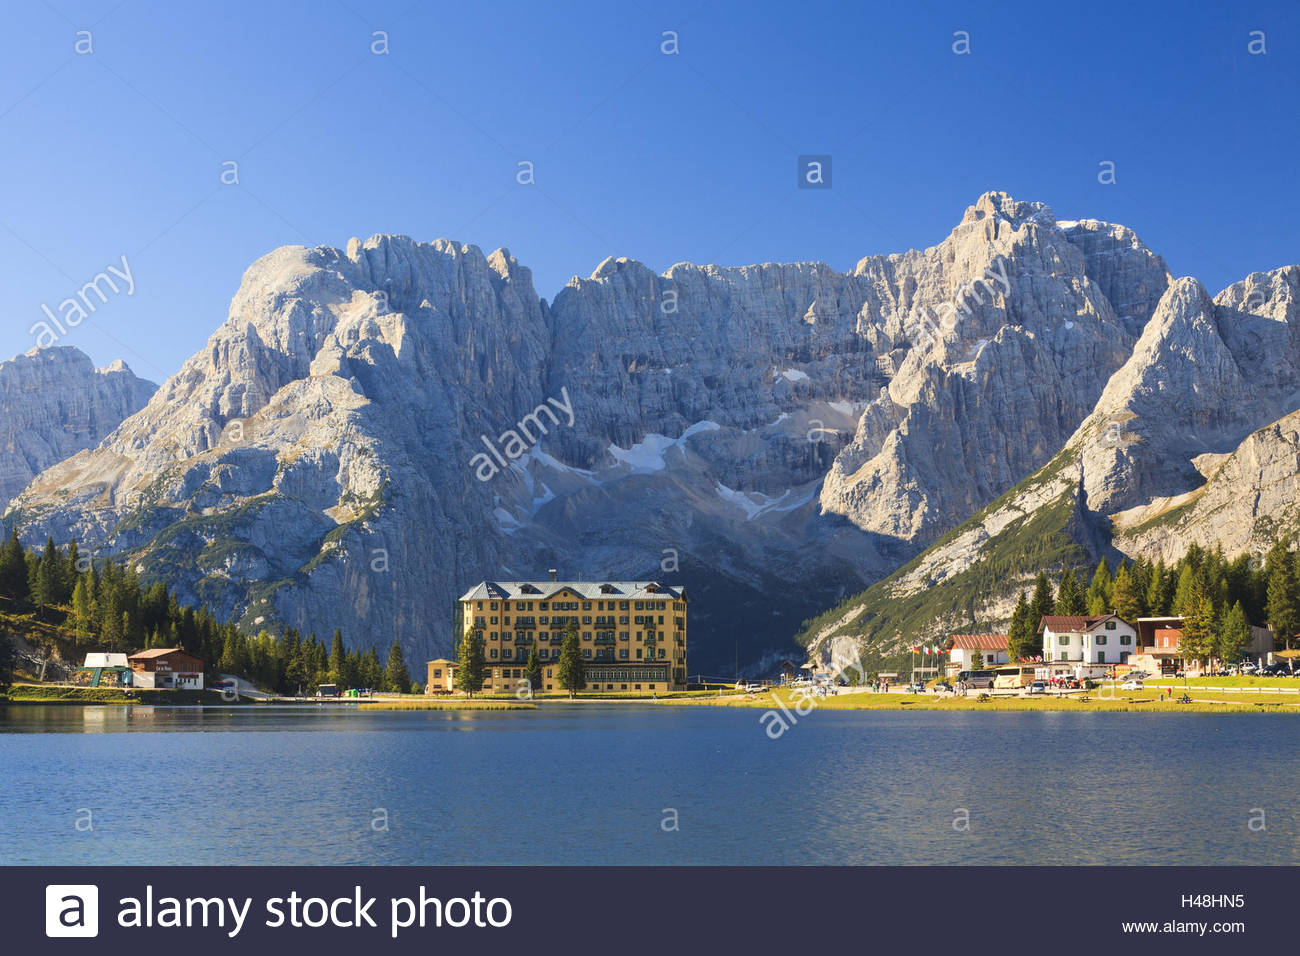 Mountain hotels at the Lago Misurina, Lake Misurina, in front of the massif of the Sorapis, Italy, - Stock Image